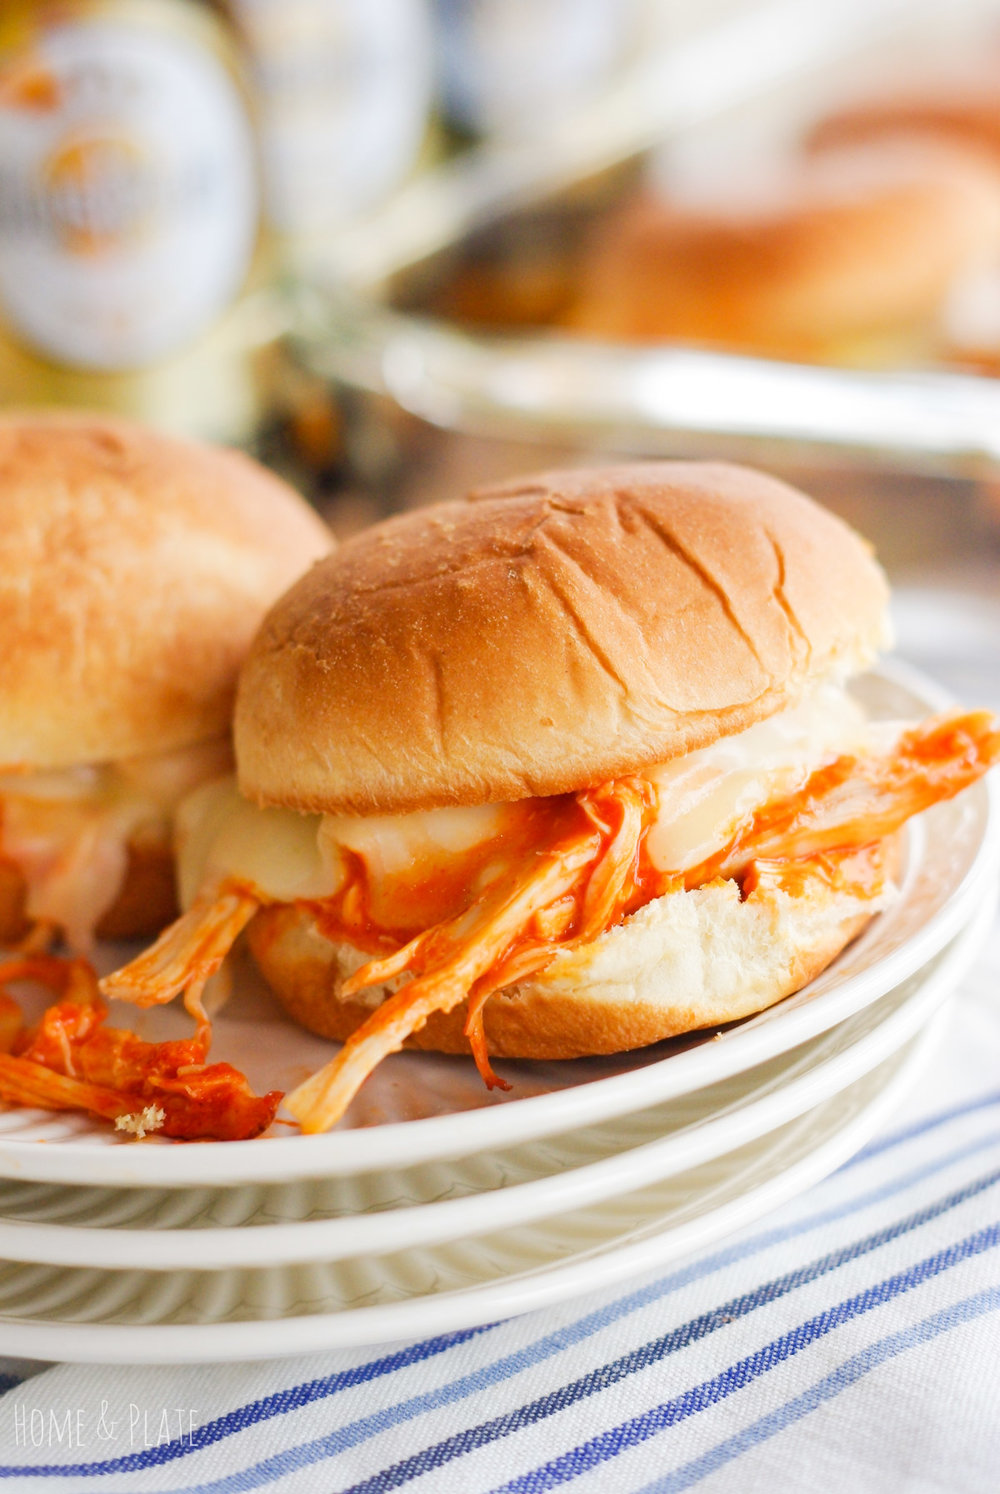 Msg 4 21+ | Buffalo Chicken Sliders| www.homeandplate.com | Plan a game day to remember by serving these spicy shredded buffalo chicken sliders oozing with melted cheese and pair of them with a cold premium pilsener. @krogerco @pepperidgefarm #ad #BeersAndBuns